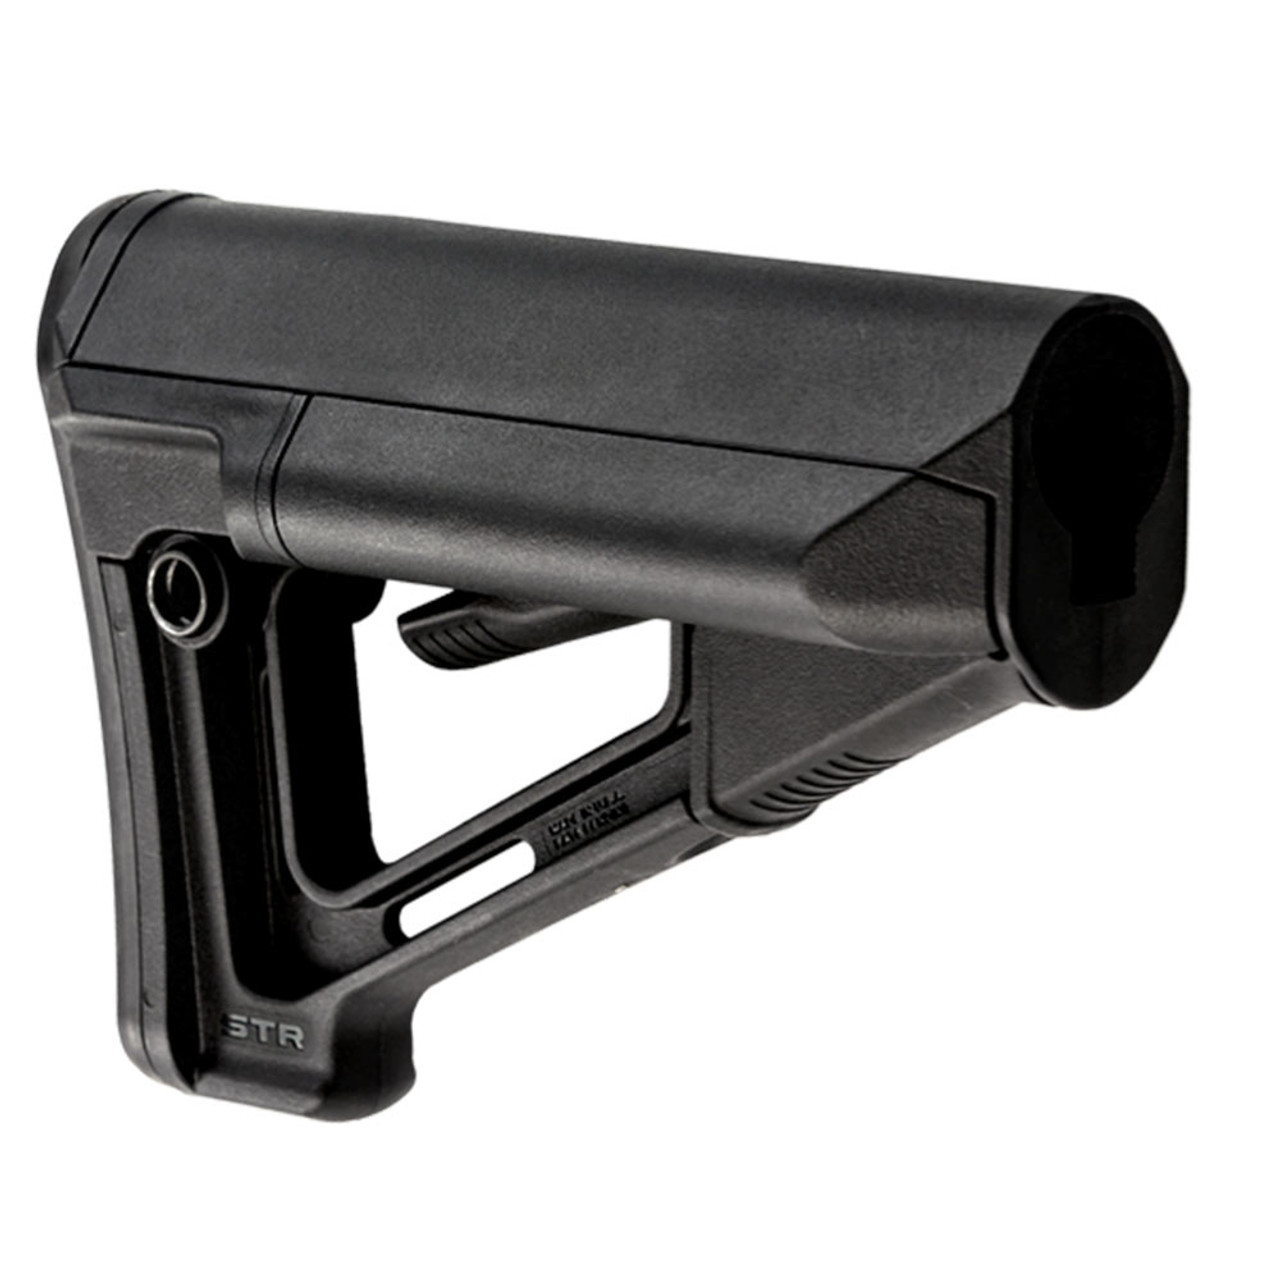 Magpul STR Carbine Mil-Spec Stock